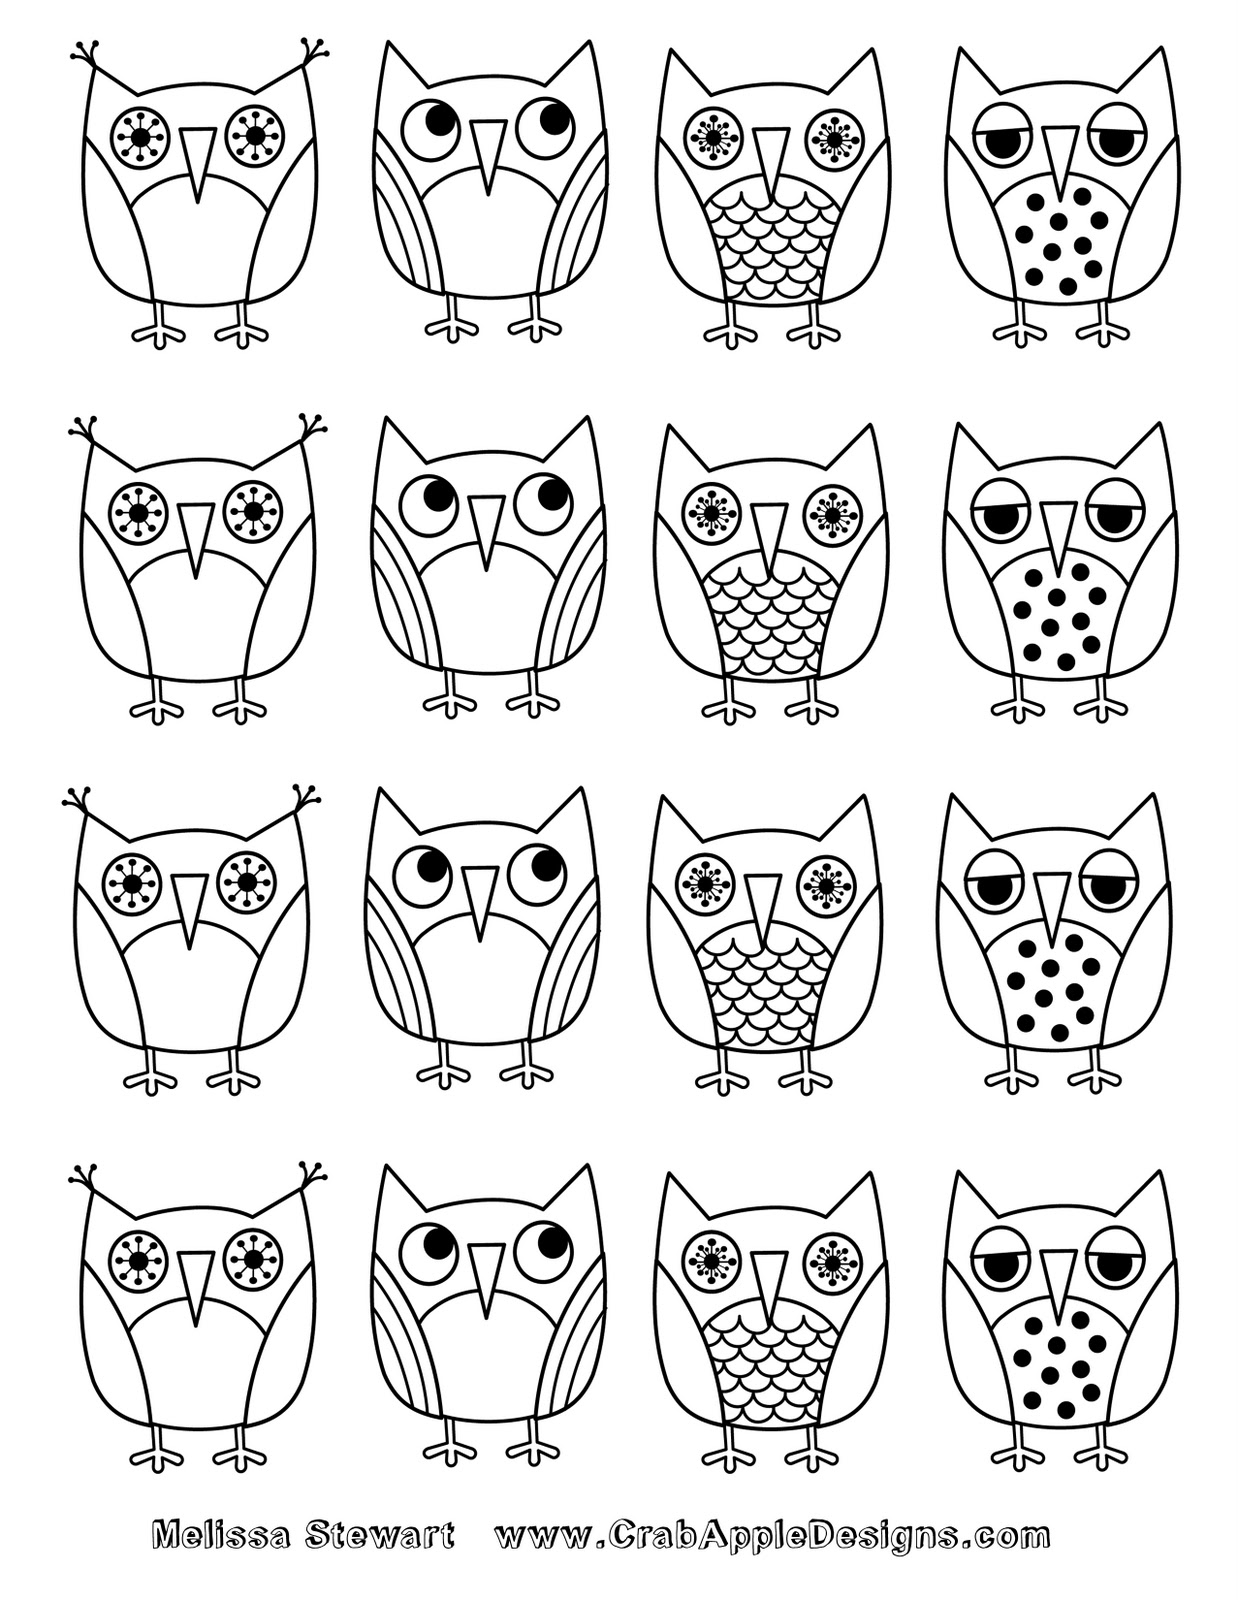 At Home With Crab Apple Designs: Owls Coloring Page: Day 7